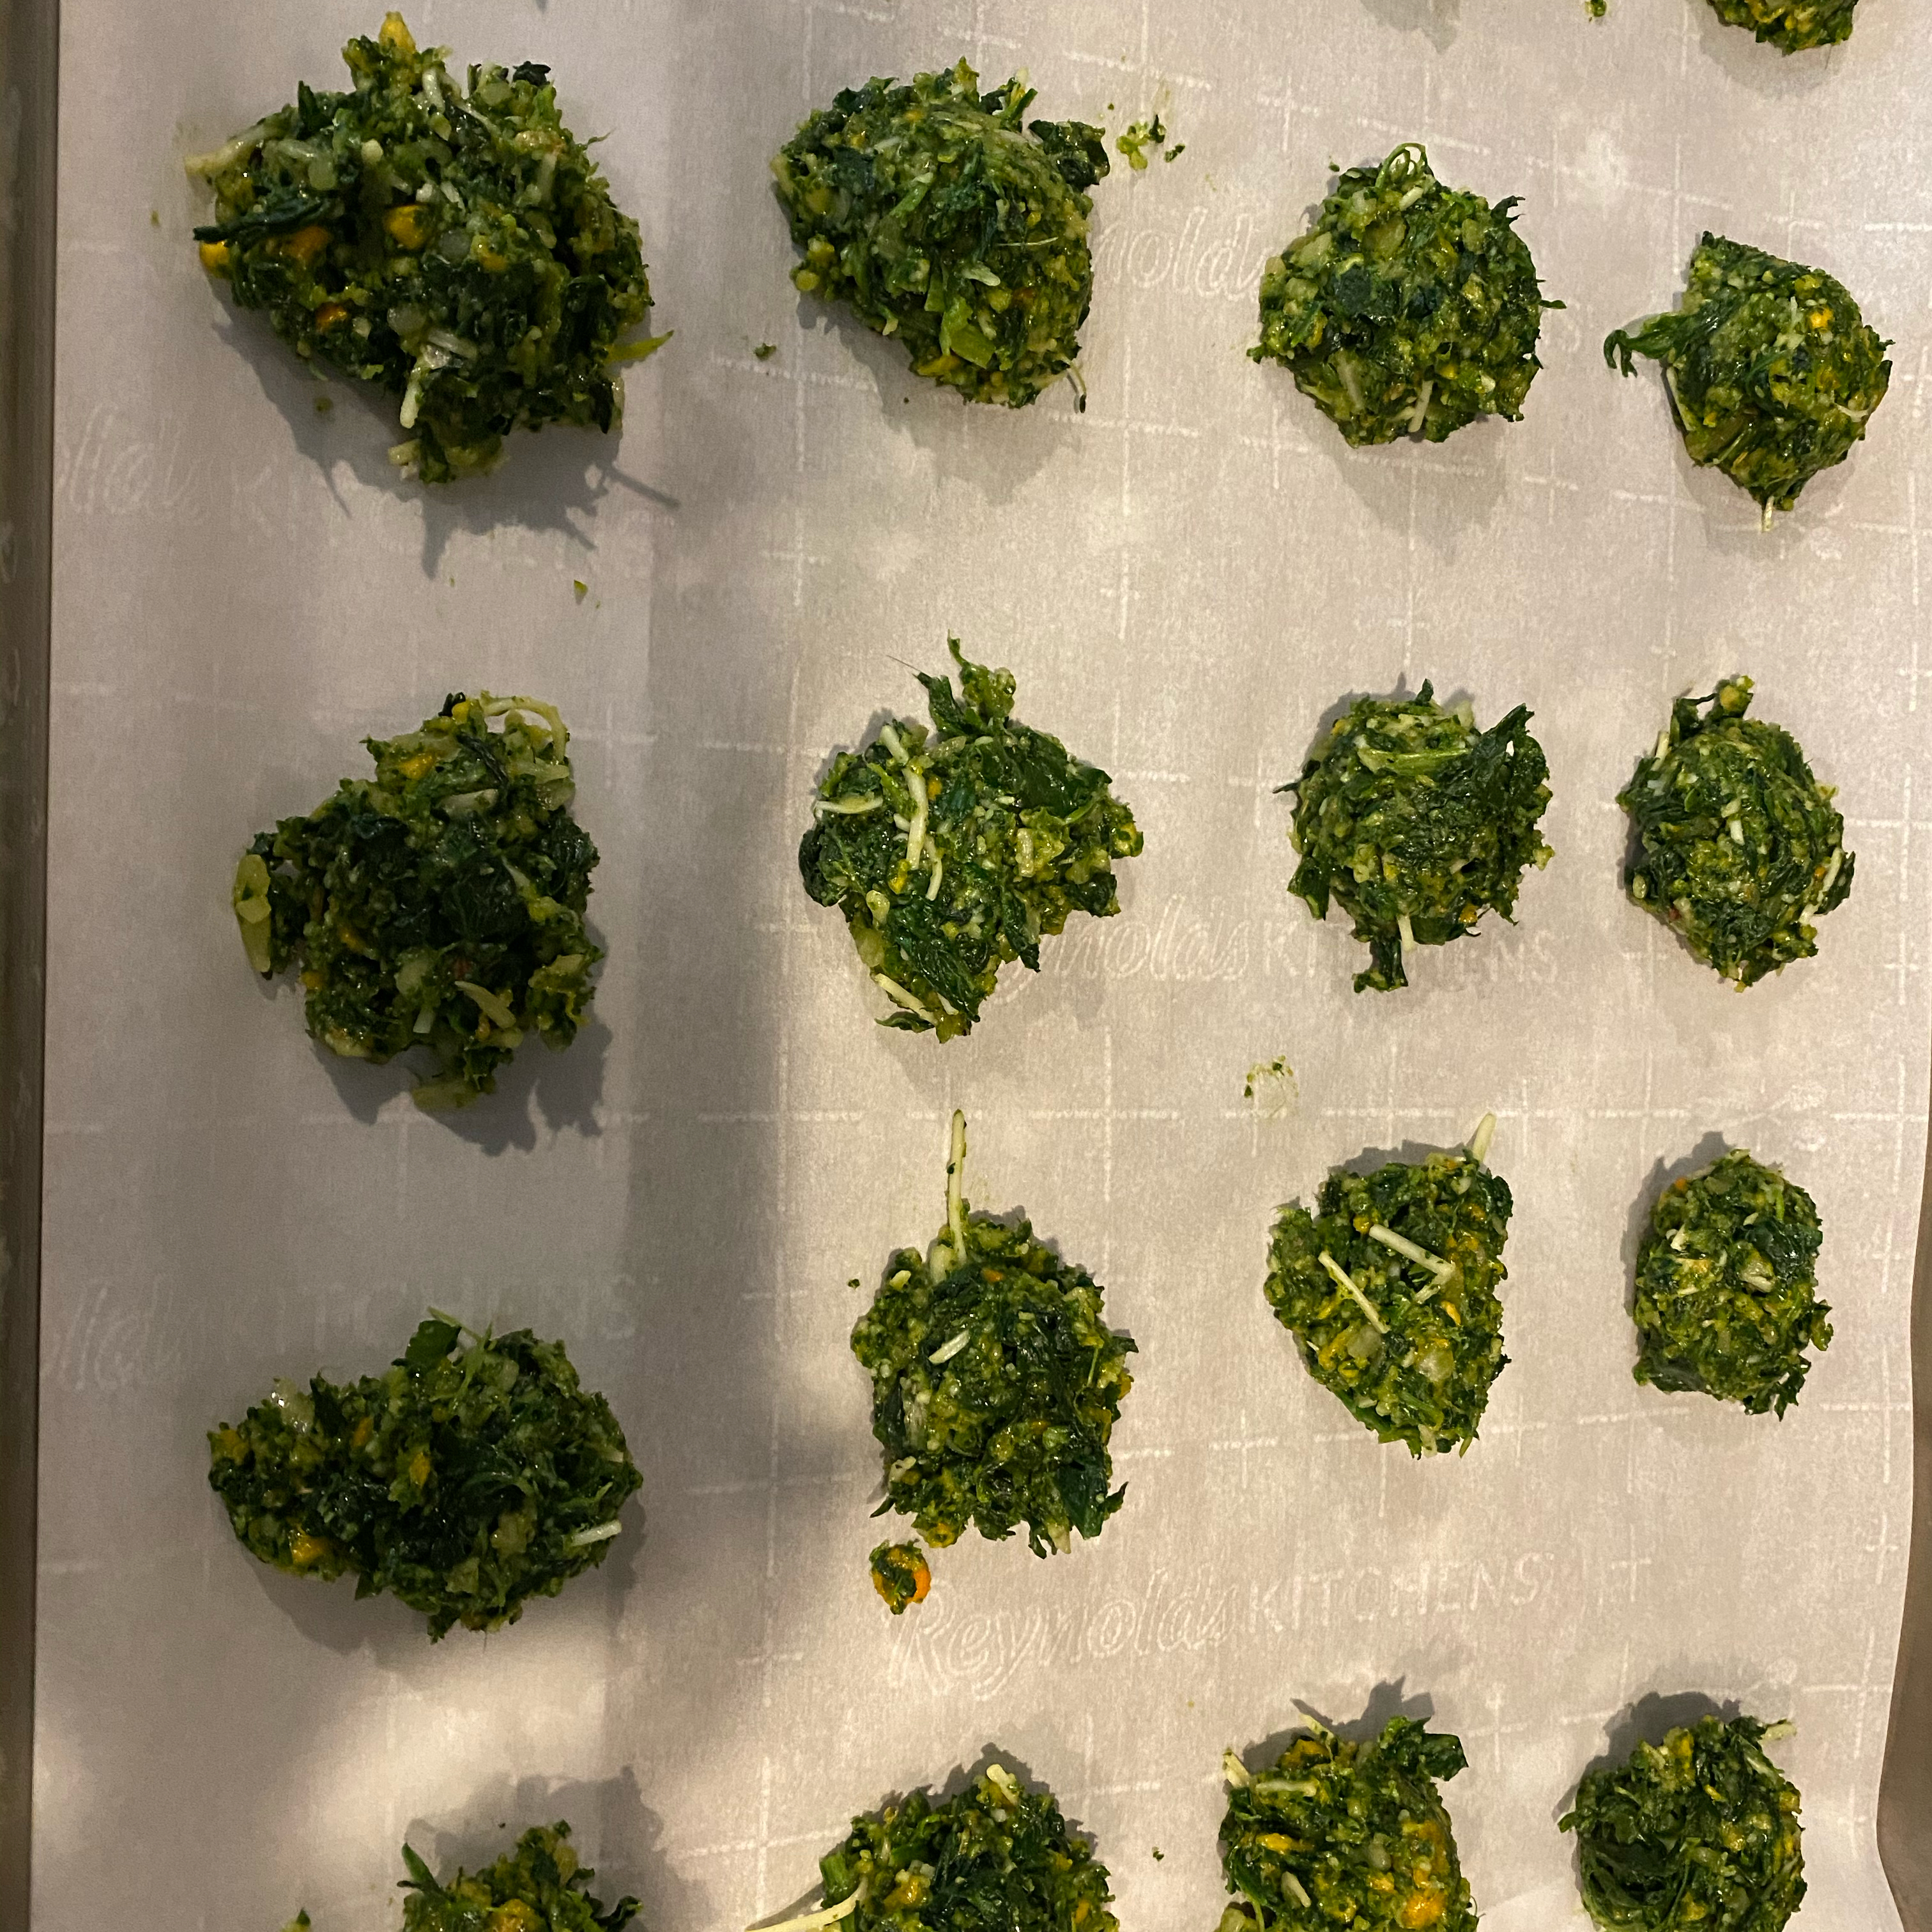 Delicious Herbed Spinach and Kale Balls Andrea Lee Bishop